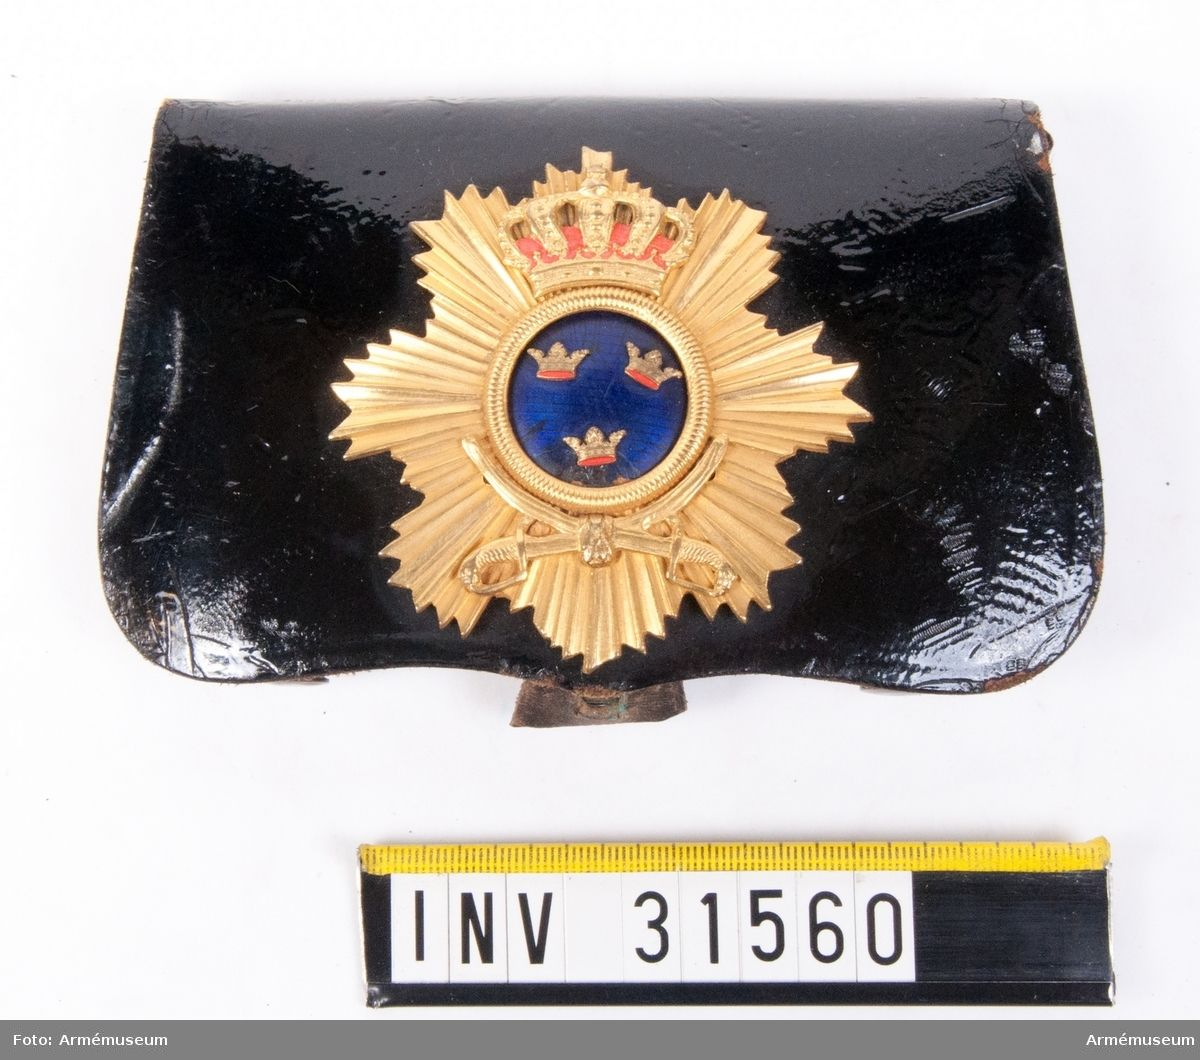 Cartouche Box m1895 for Officers at the Life Regiment Dragoons.